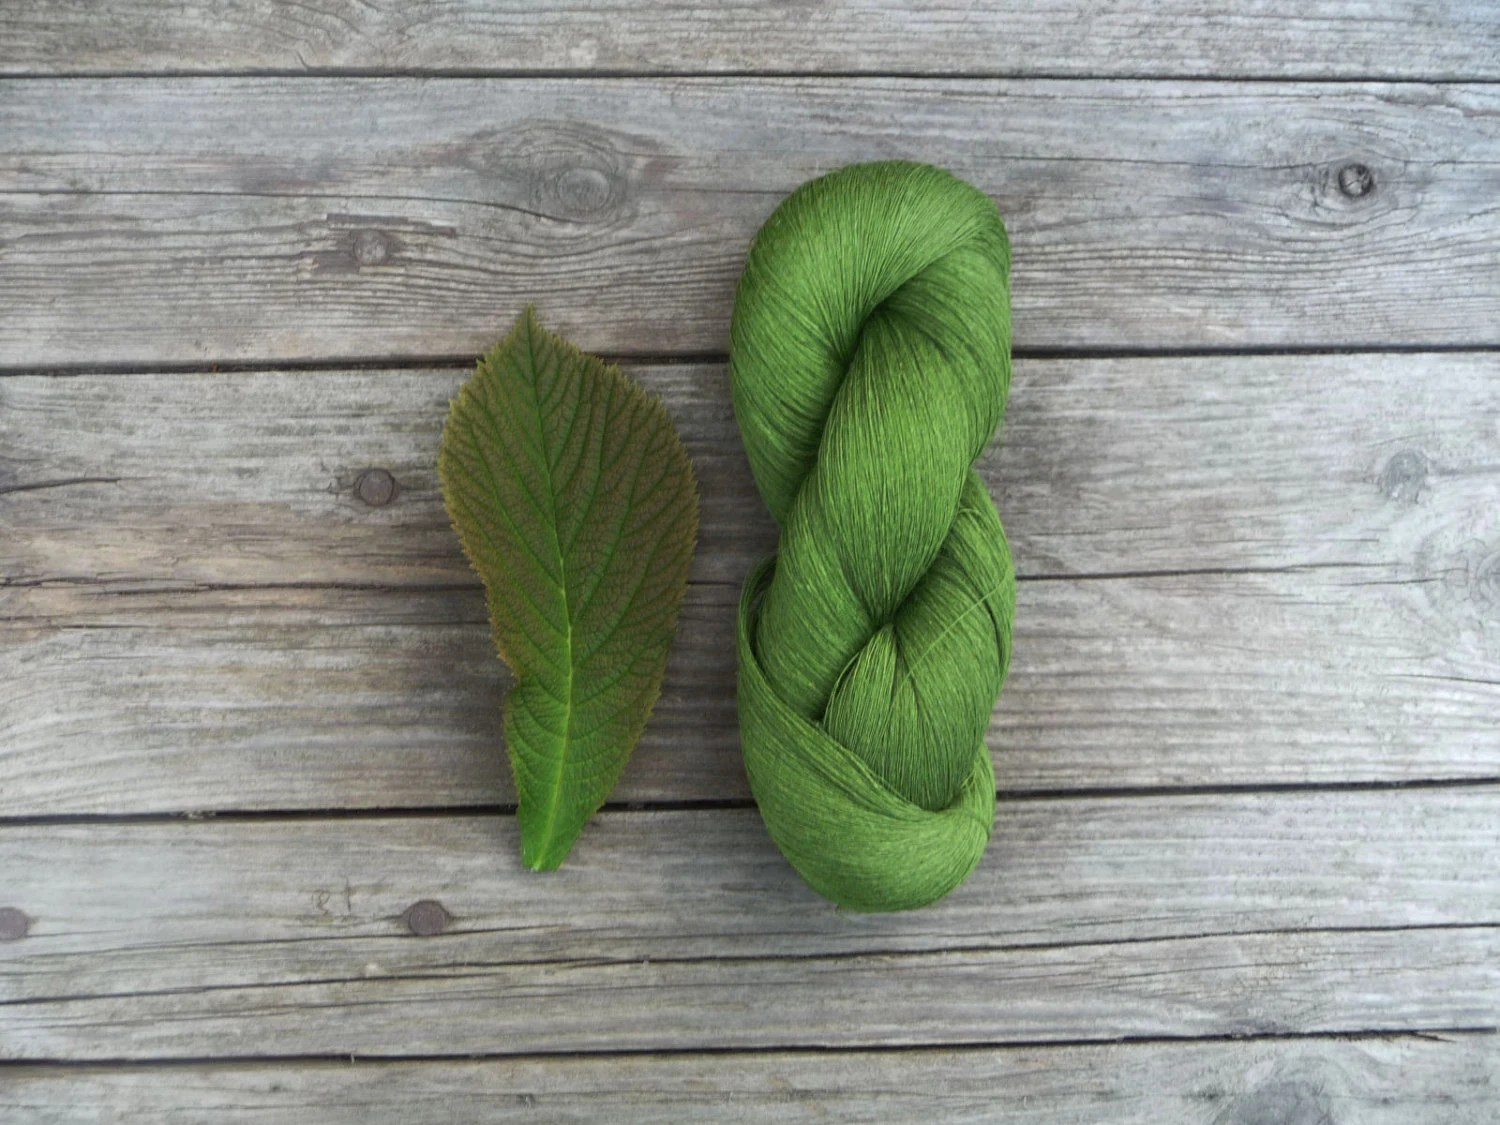 Linen Thread skein in natural green color - thread for summer projects - YarnStories